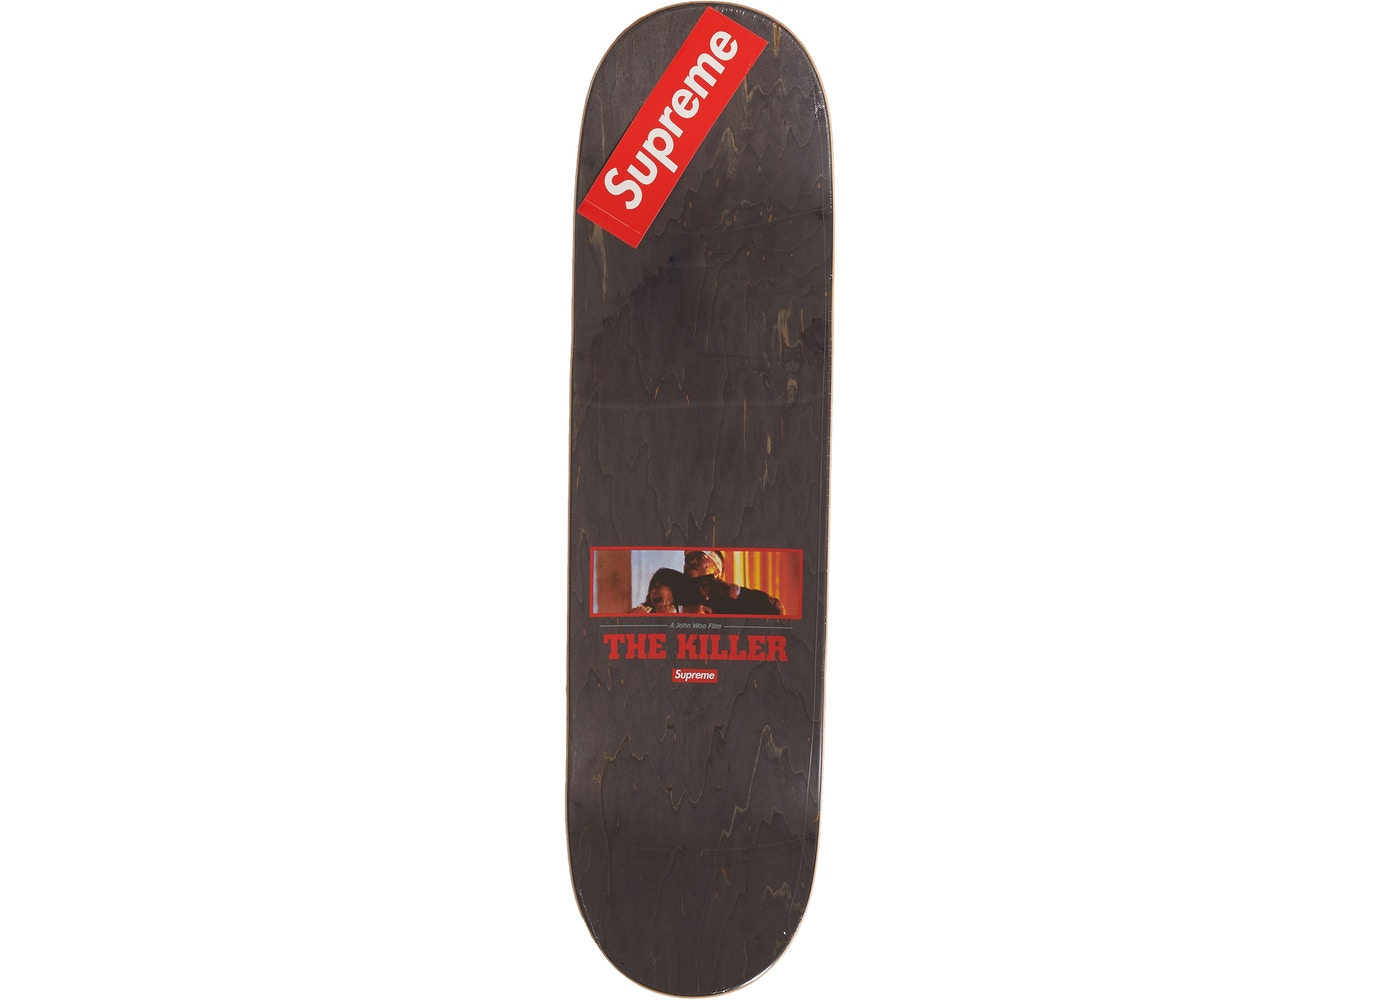 Supreme The Killer Skateboard Deck Multicolor - FW18 2d6d62edd7c